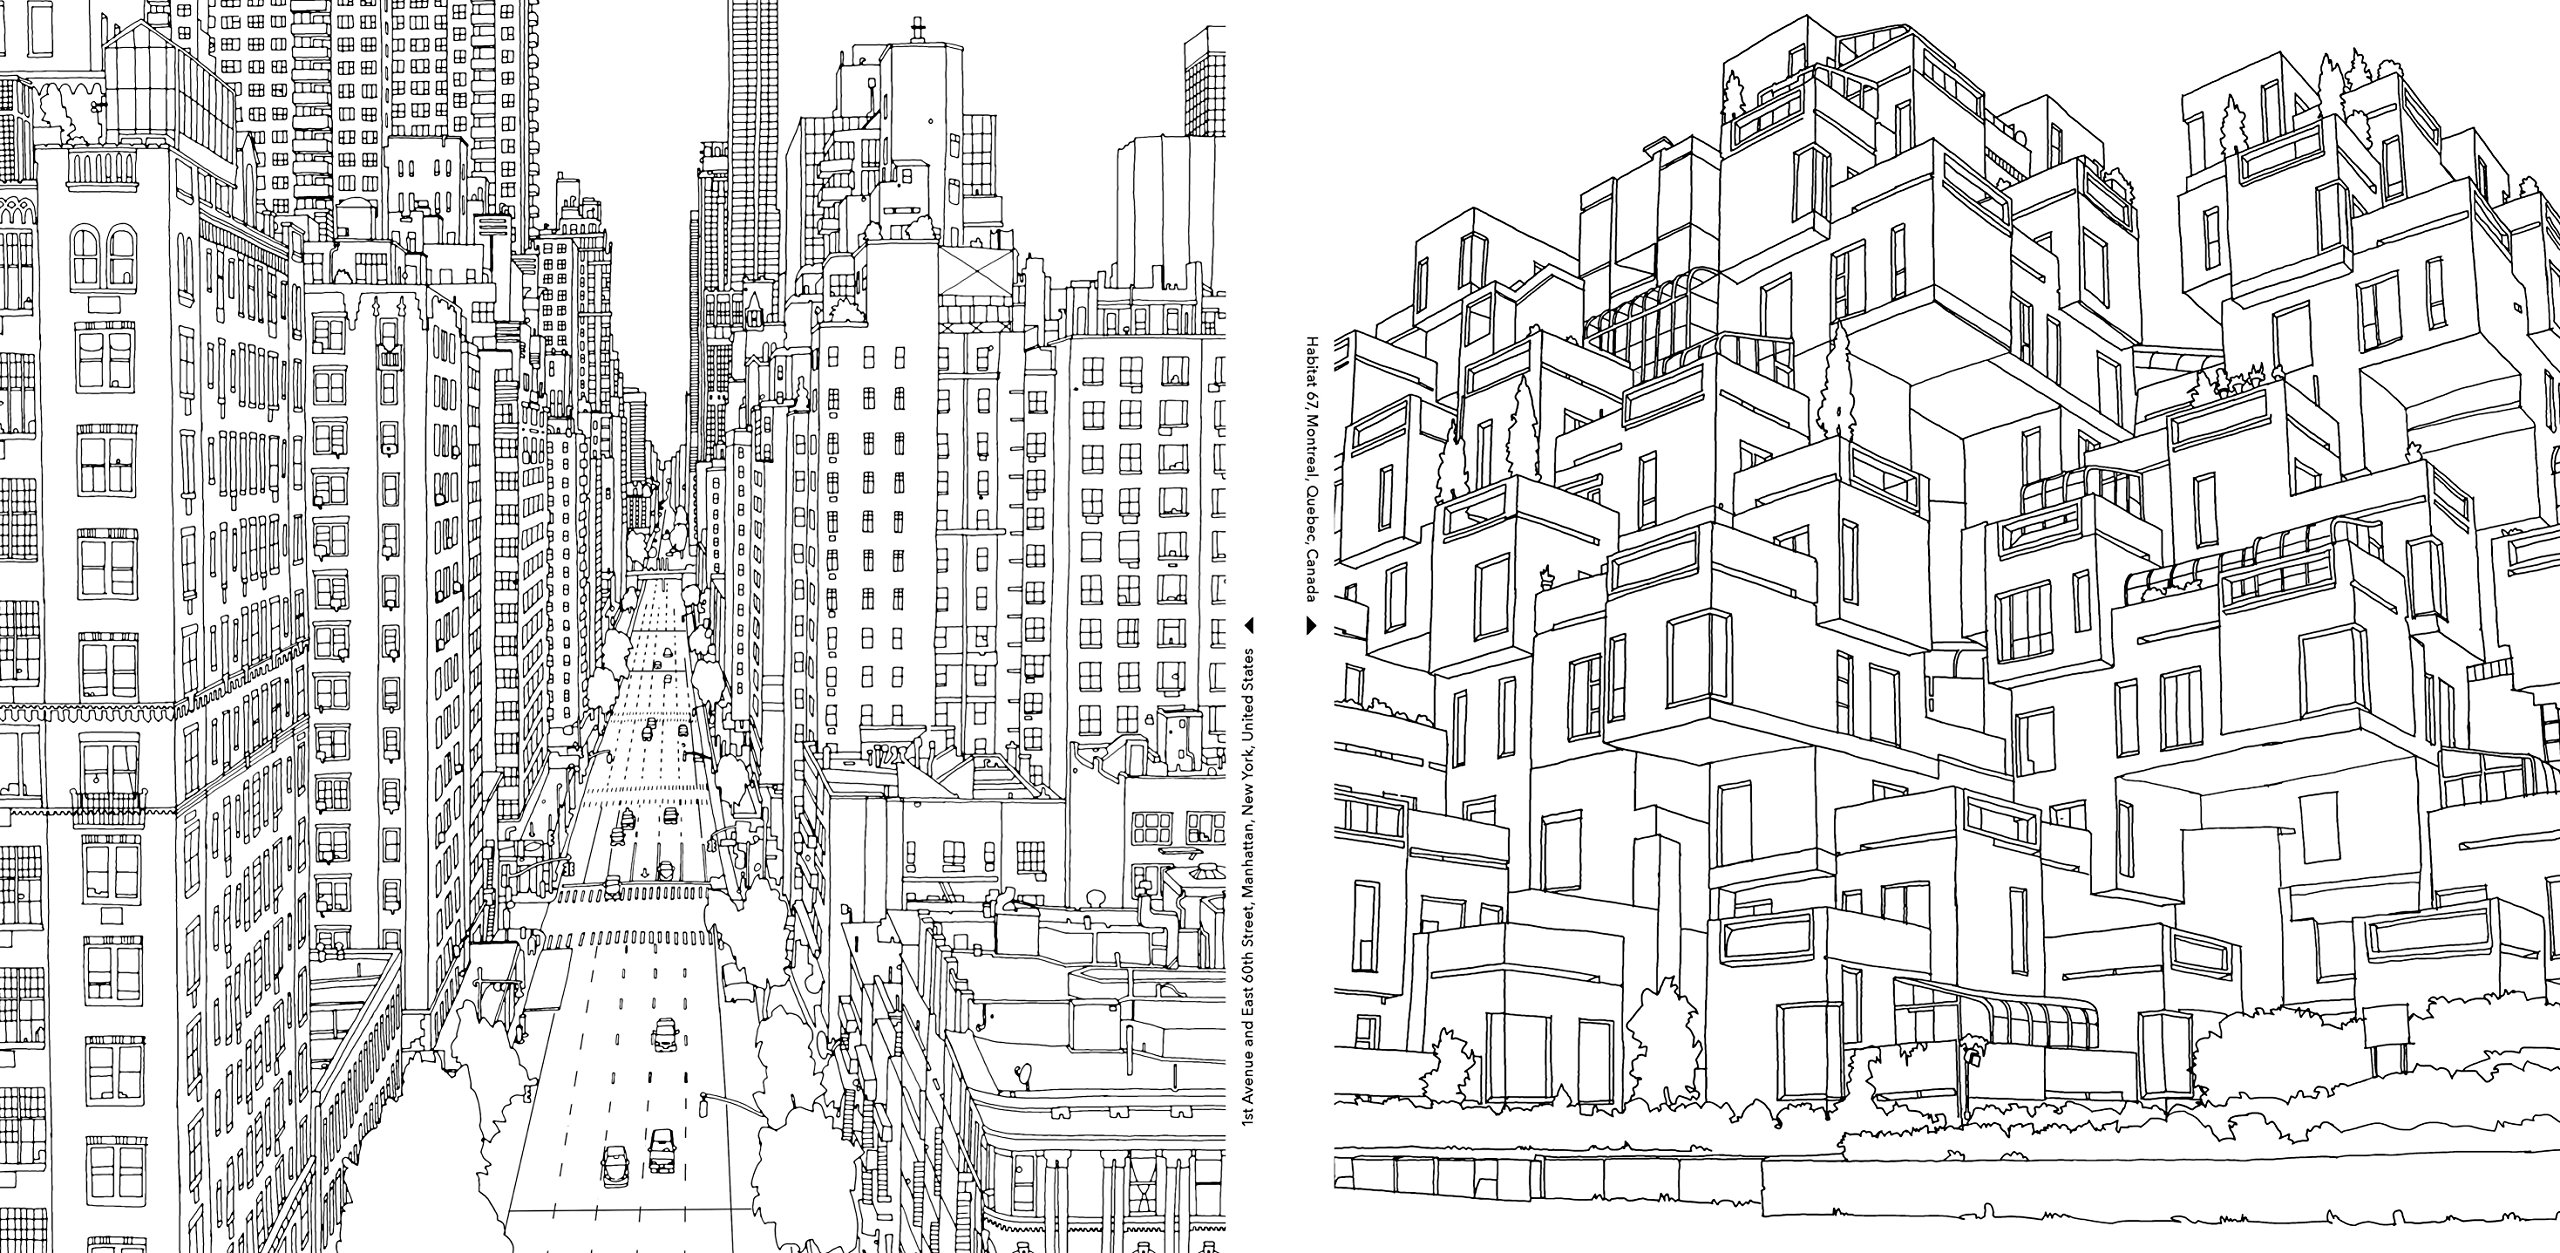 1st aveeast 60th st in manhattan and habitat 67 in montrealimage via amazon - Detailed Coloring Books